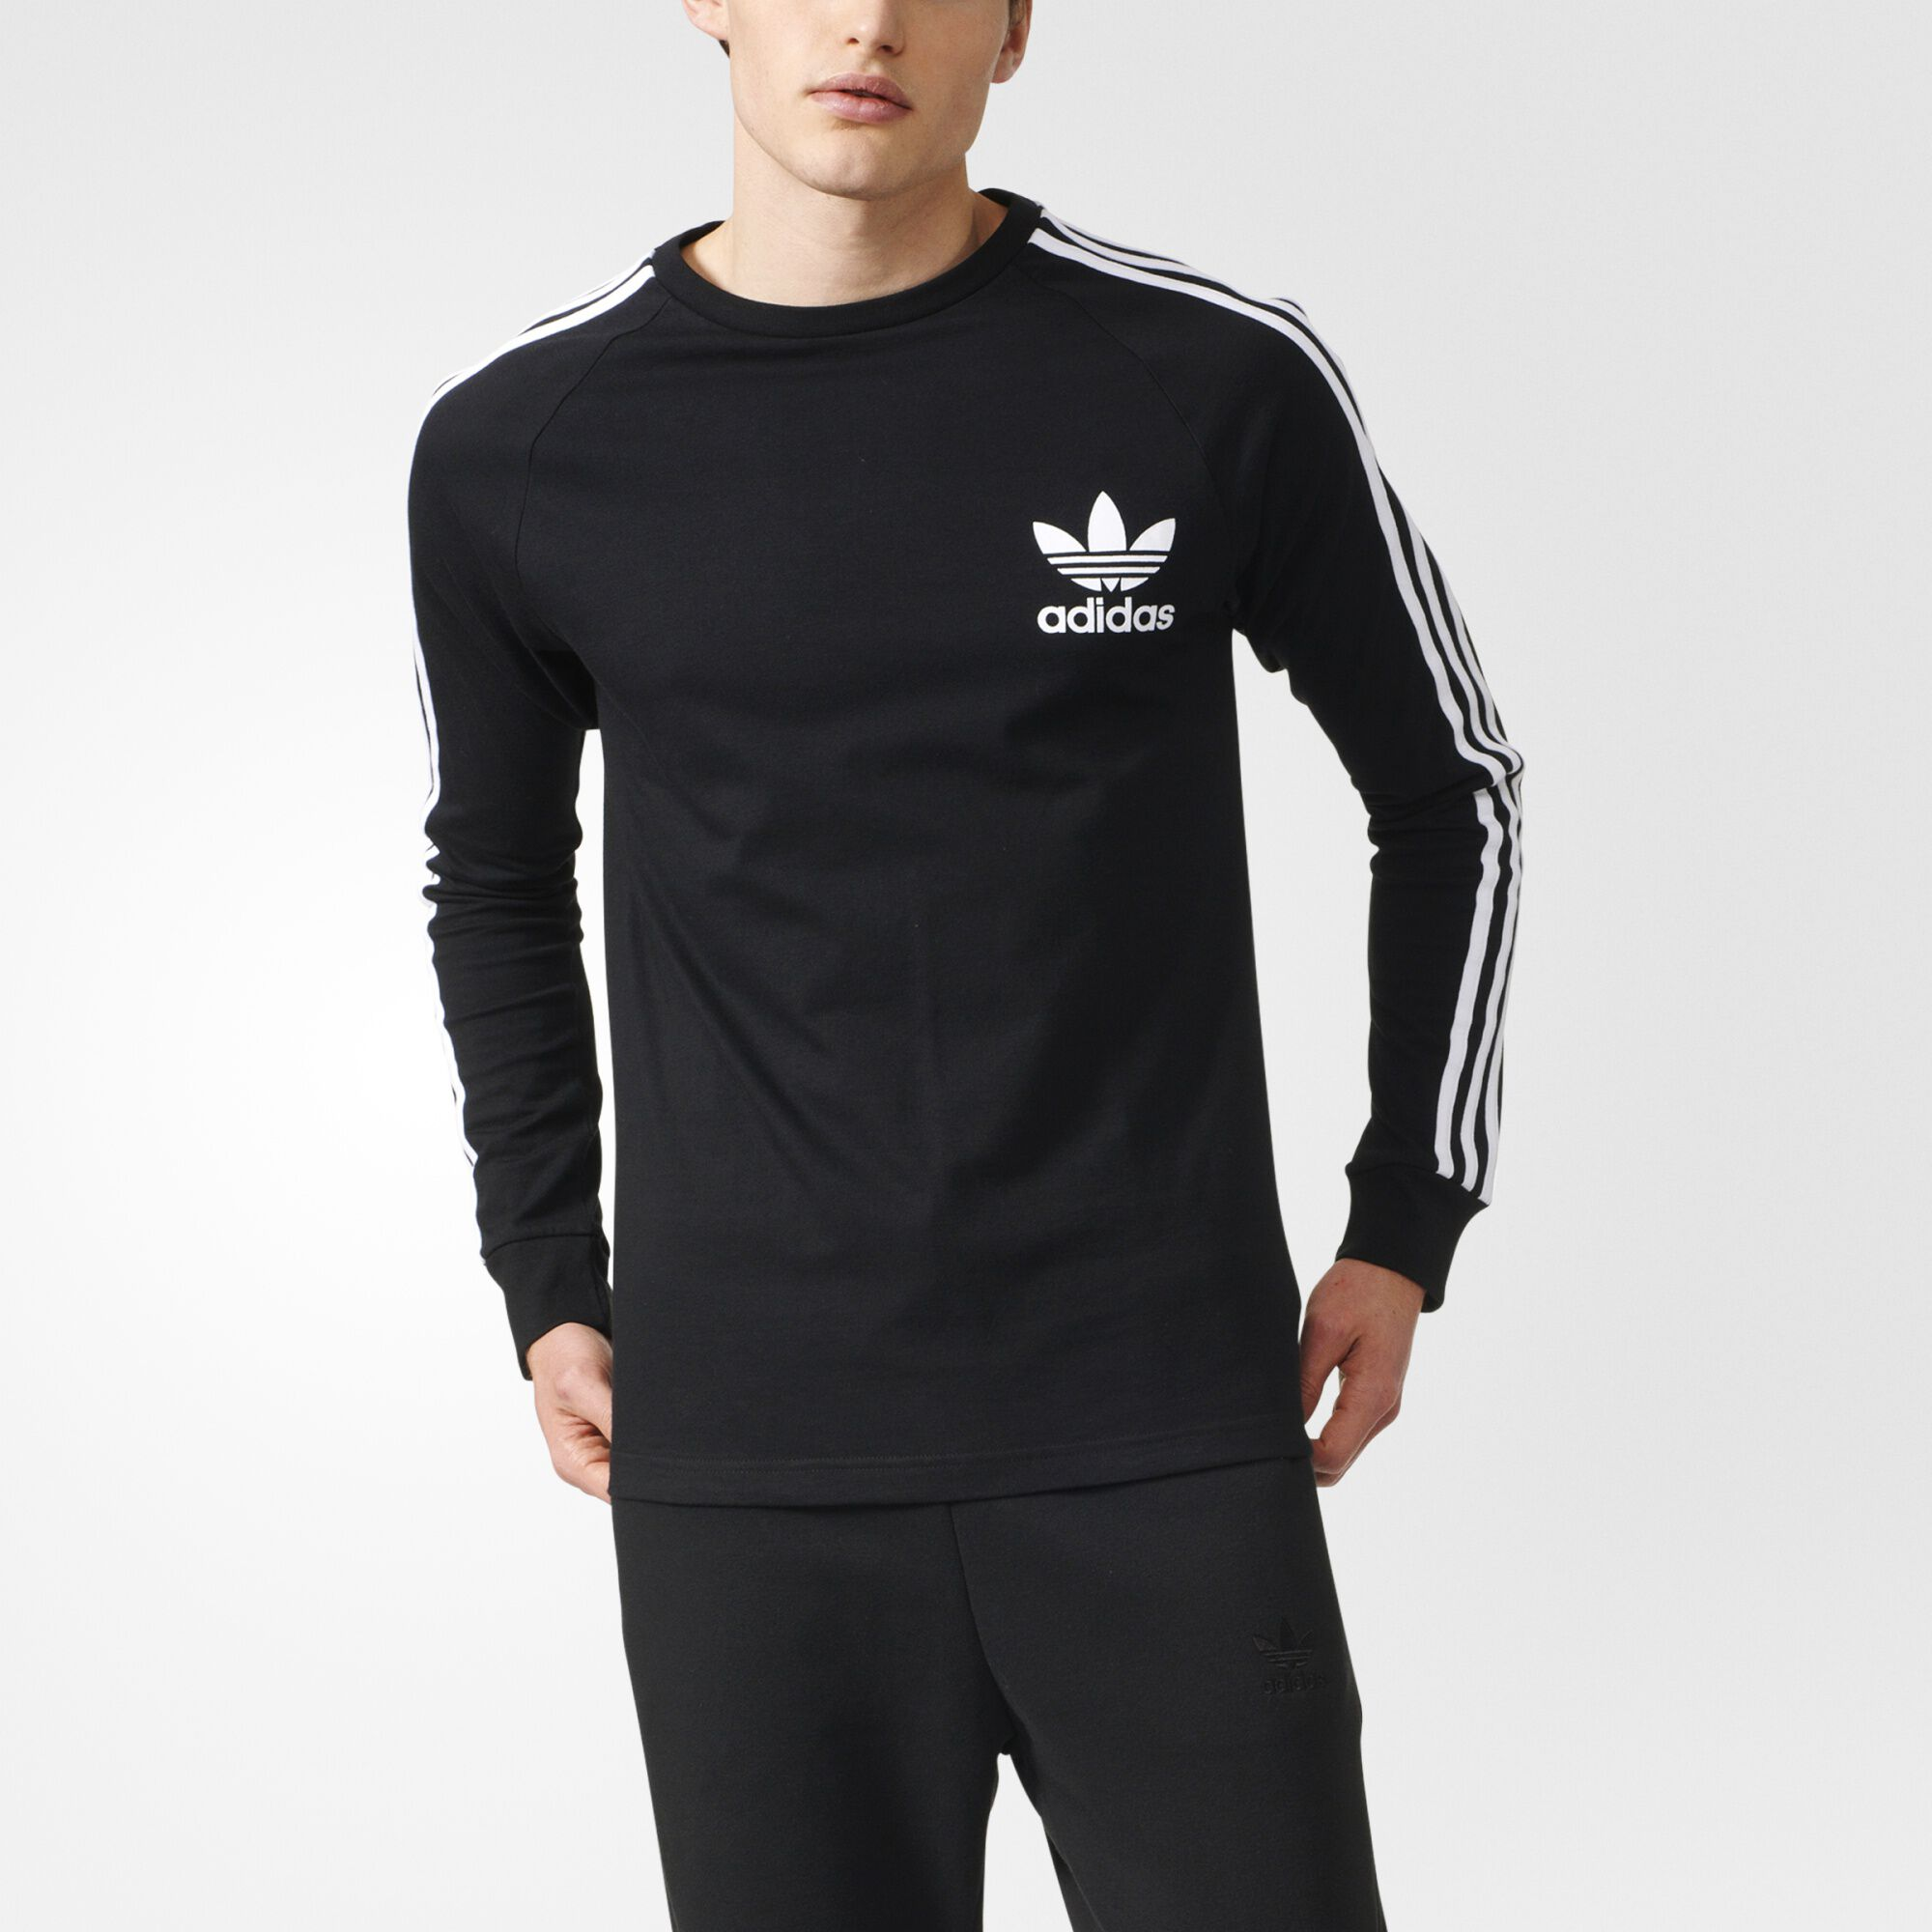 sold adidas black long sleeve shirt adidas superstar black. Black Bedroom Furniture Sets. Home Design Ideas